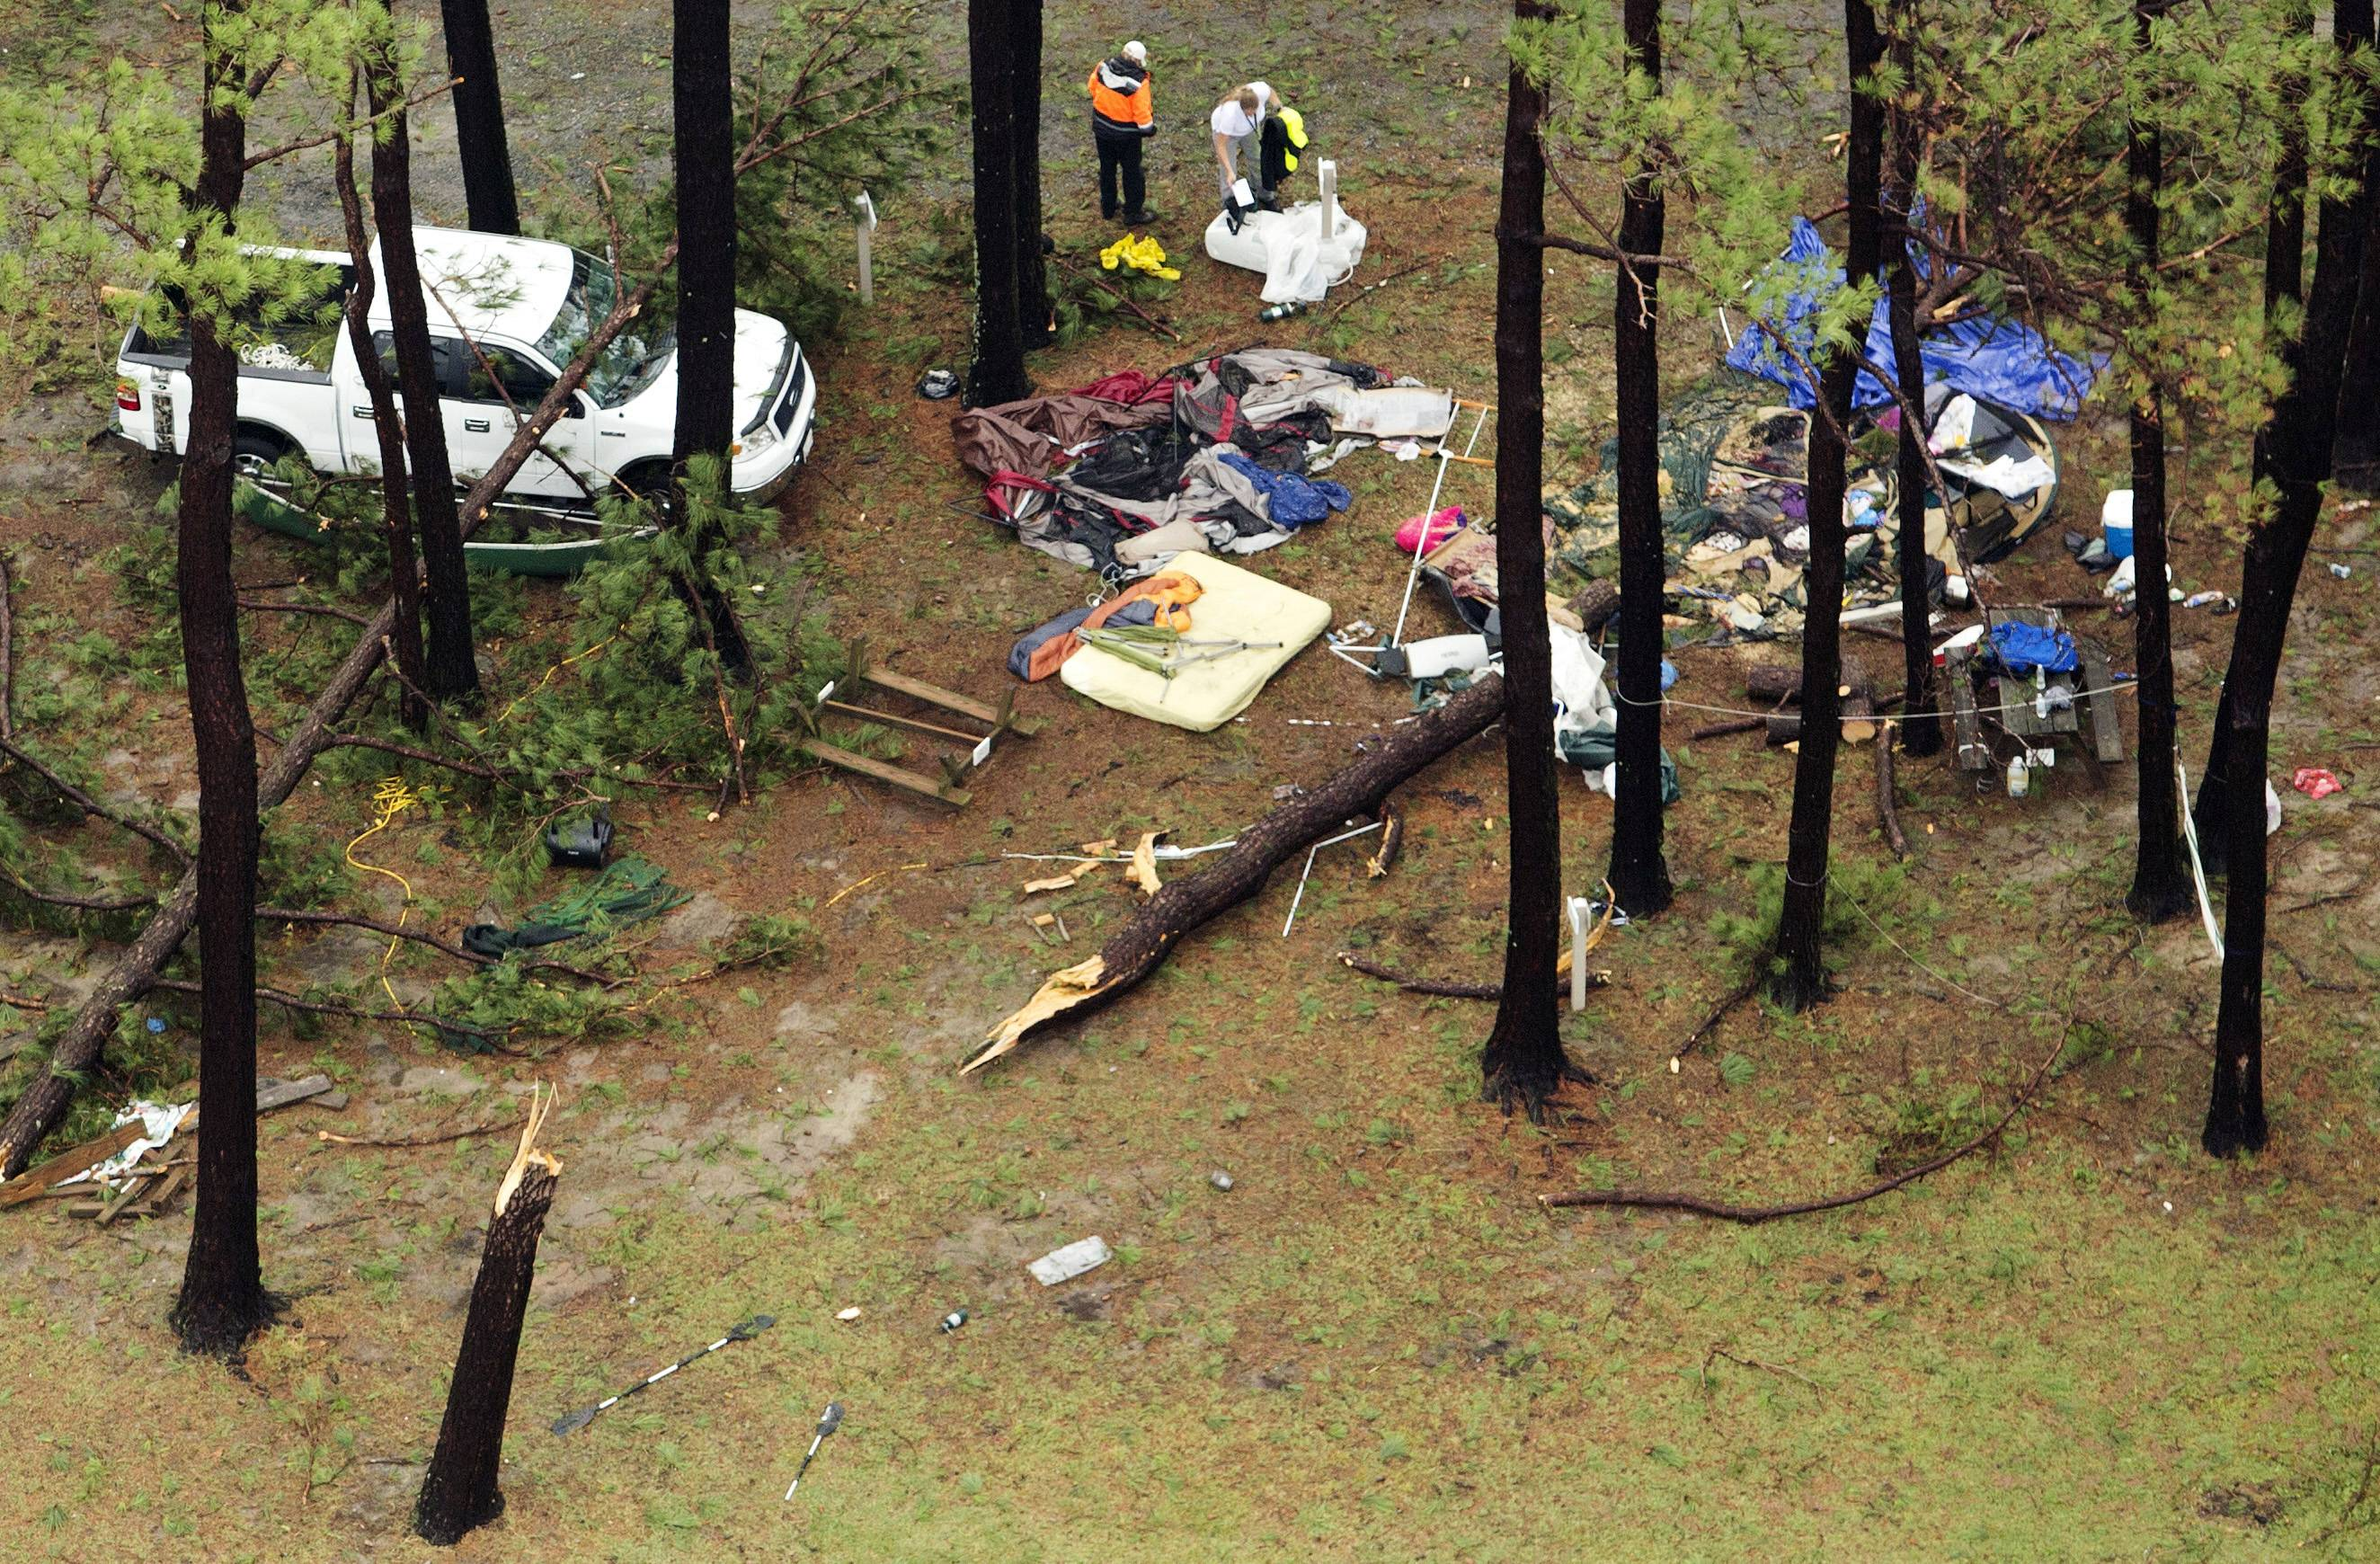 In this aerial photo, people inspect damage at Cherrystone Family Camping & RV Resort in Northampton County, Va., Thursday, after a severe storm swept through the area. Softball-sized hail and rain toppled dozens of trees and flipped recreational vehicles at the campground Thursday, killing two people and injuring more than two dozen.